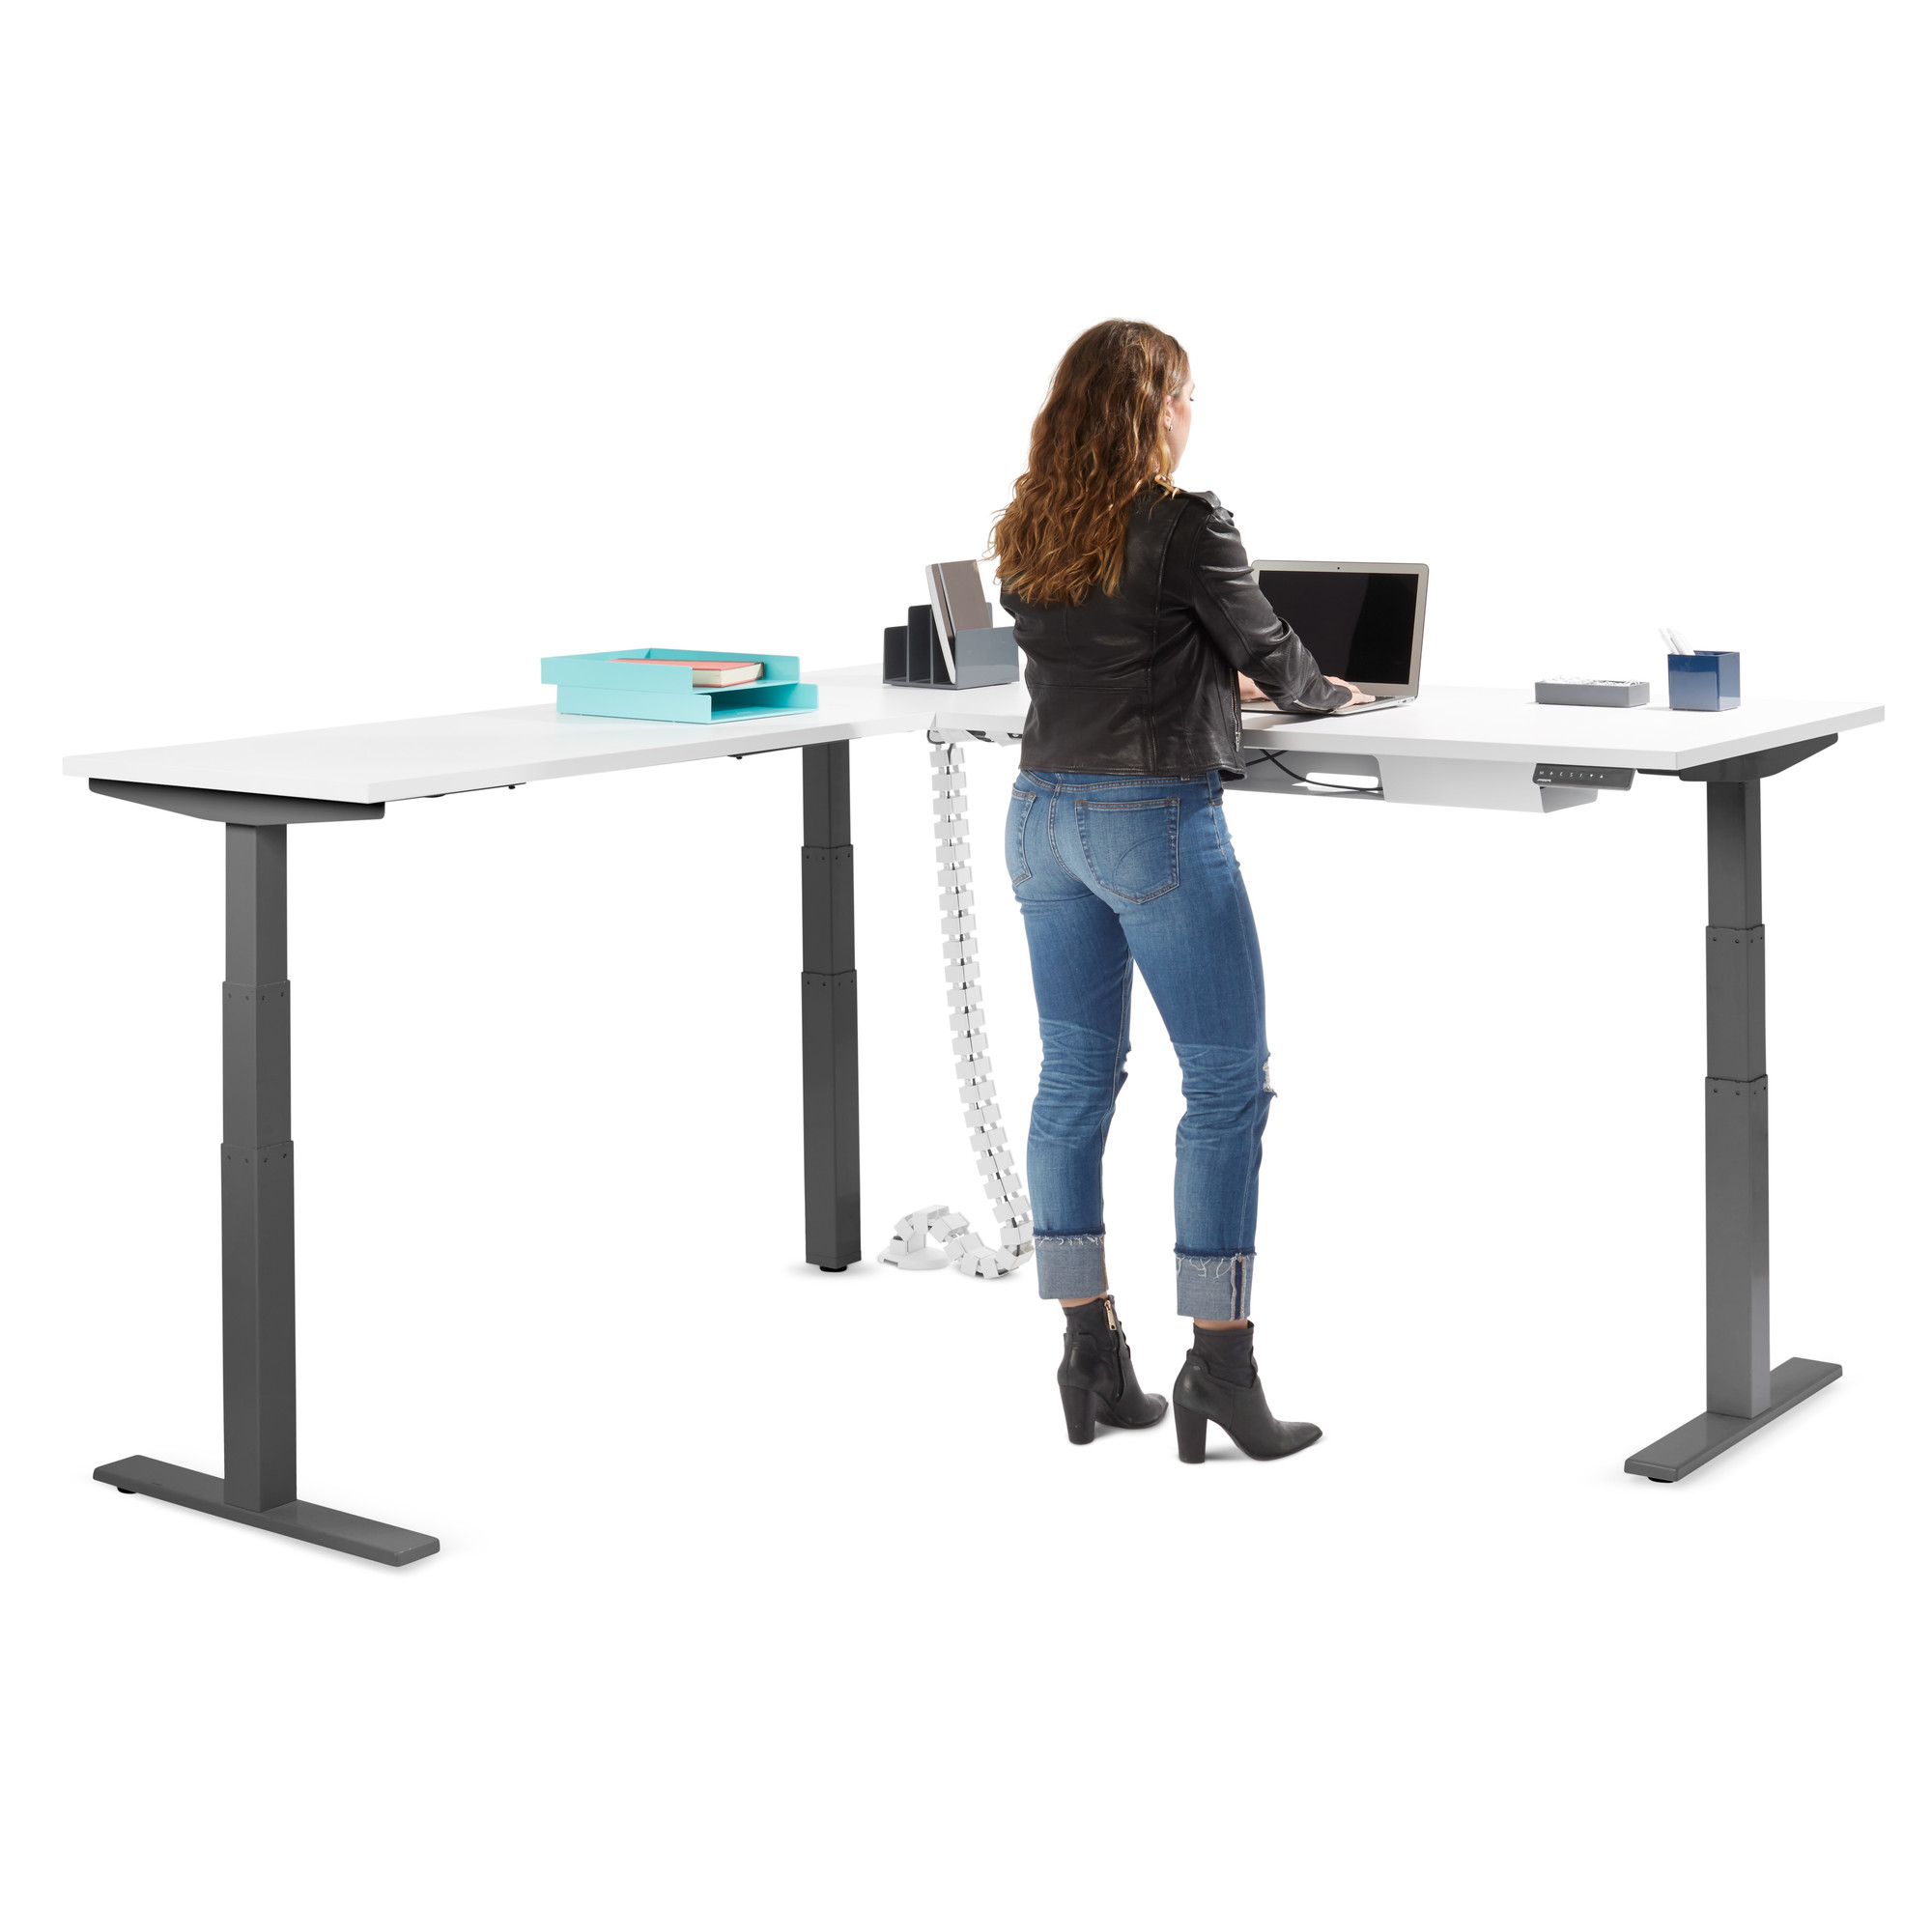 Amazing White Series L Corner Desk With Charcoal Base Left Handed Adjustable Height Desks Poppin Download Free Architecture Designs Grimeyleaguecom